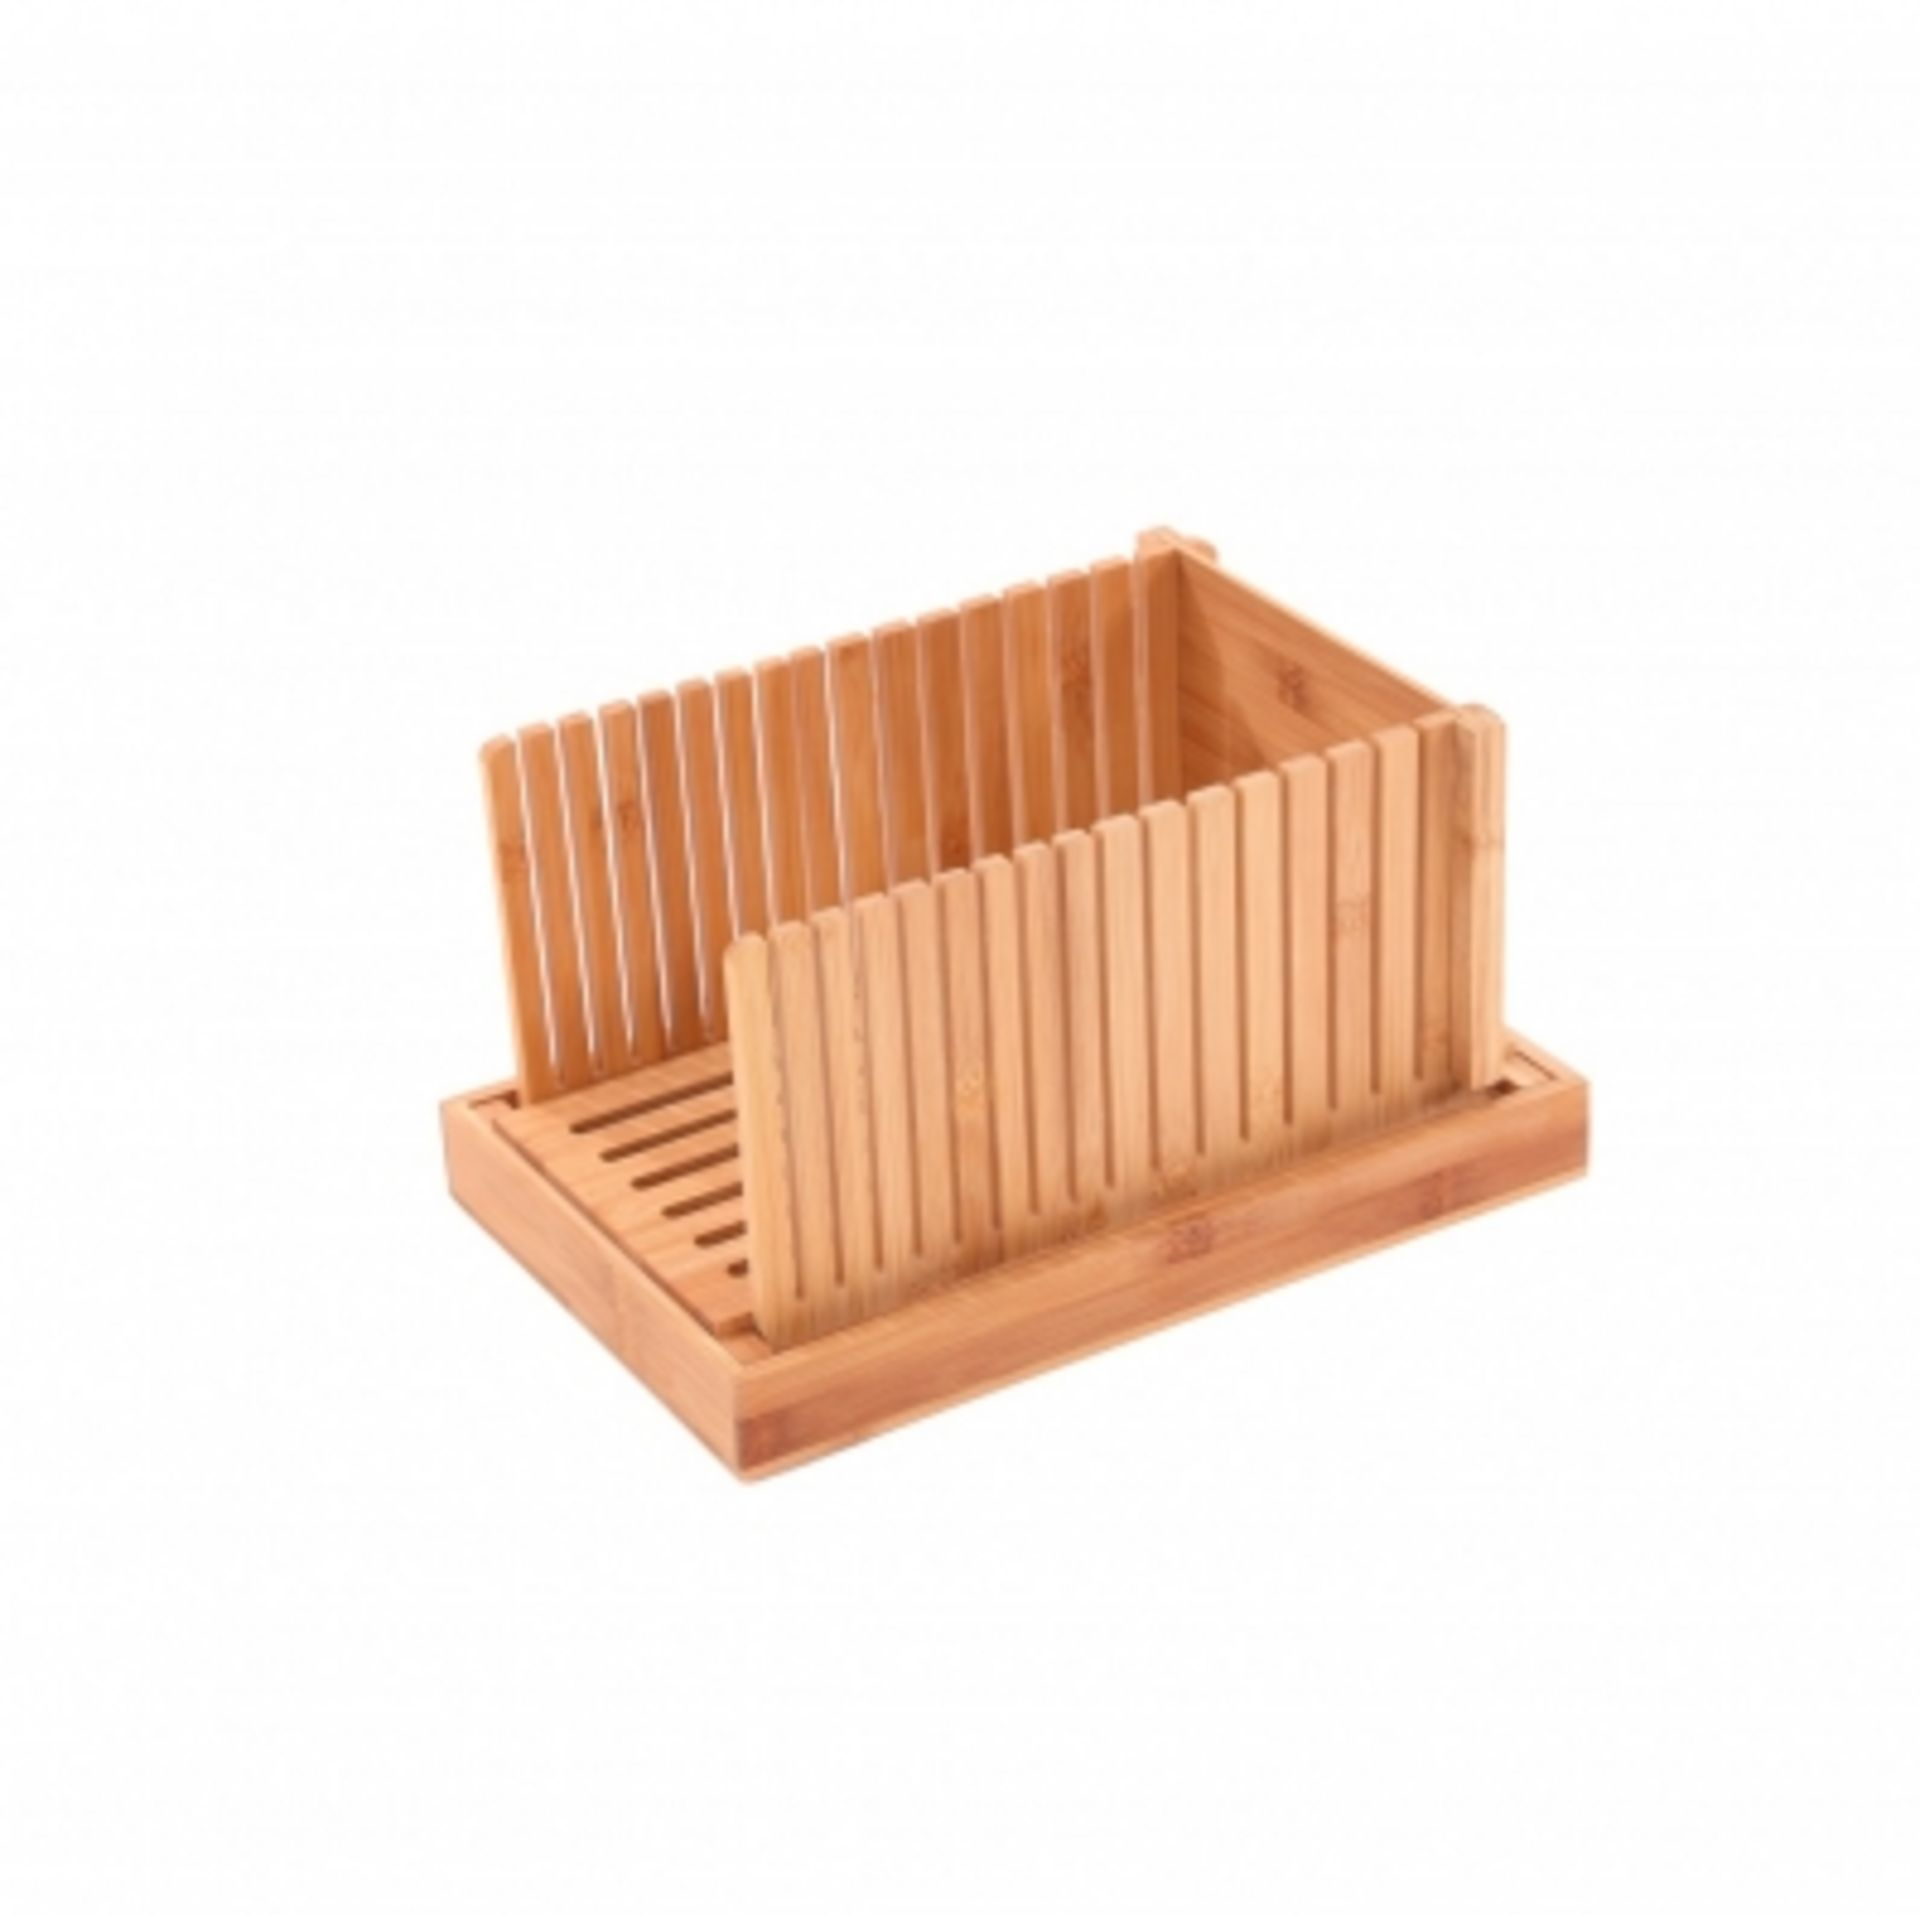 Lot 37 - (RU26) Bamboo Wooden Bread Slicer Chopping Cutting Board with Crumb Catcher The bamboo bread...